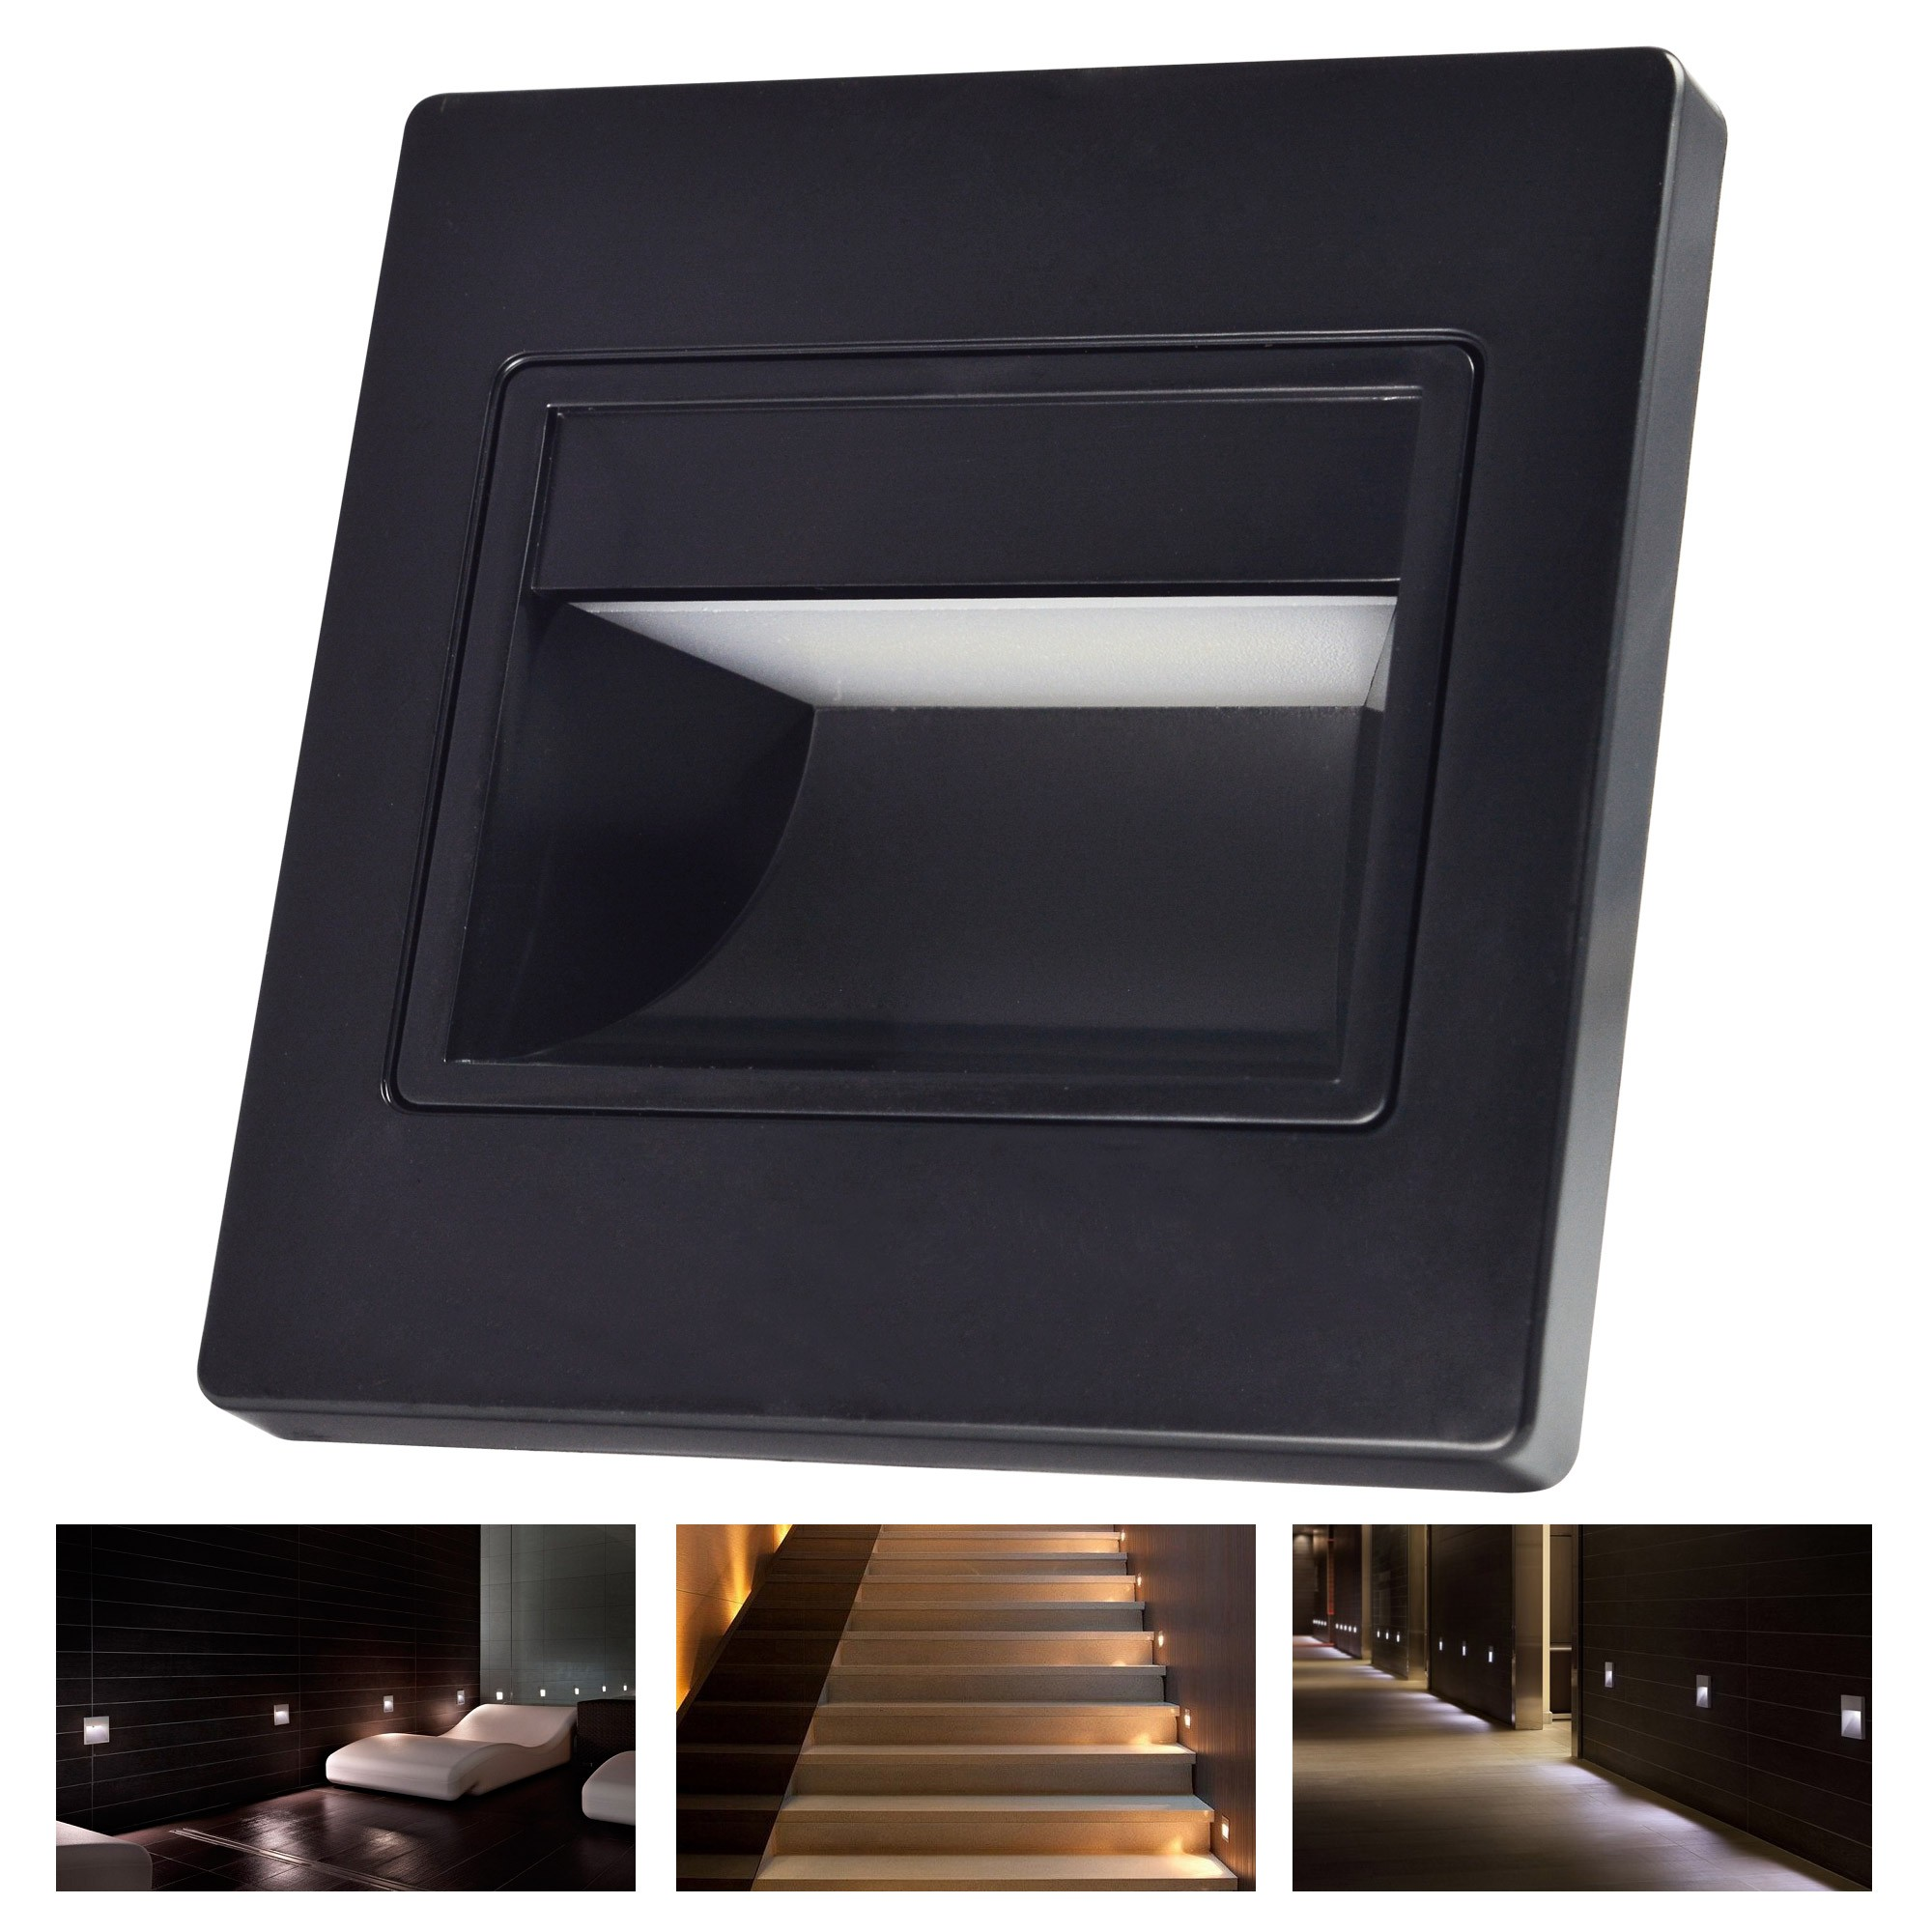 MengsLED MENGS 1.5W LED Wall Step Light 20x 2835 SMD LEDs LED Stair Lamp In Warm White/Cool ...